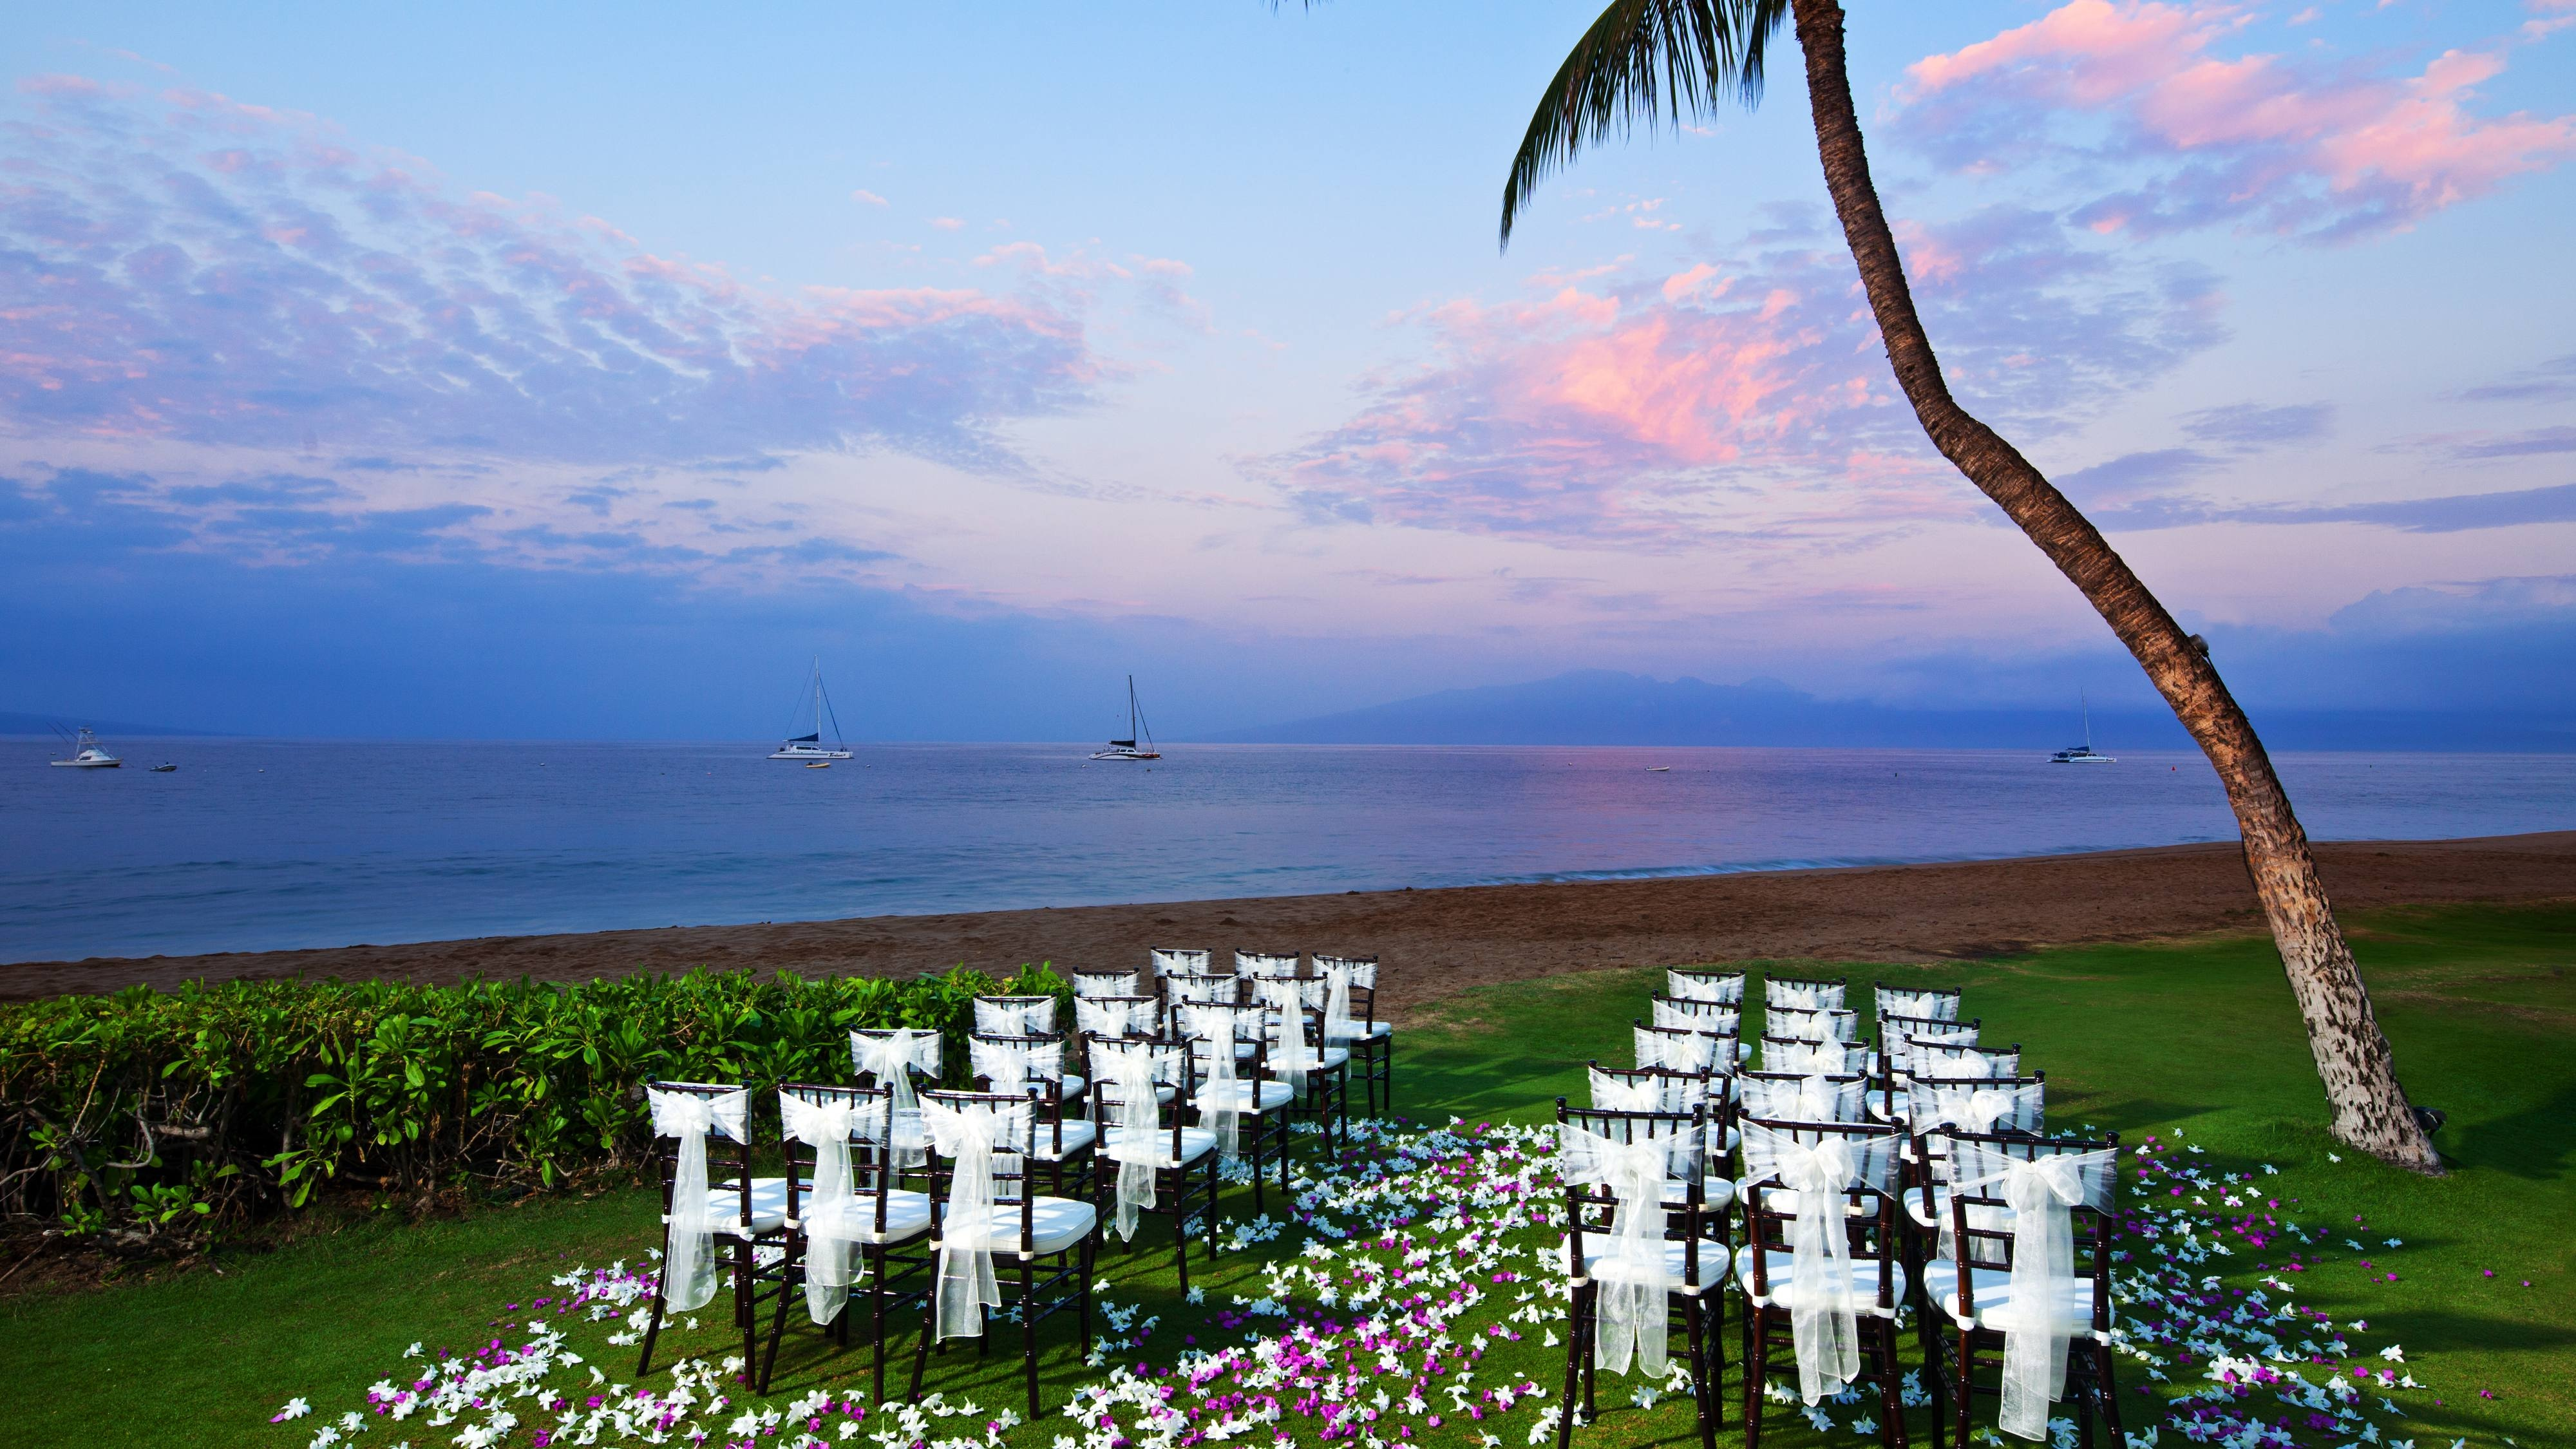 Ocean Front Lawn Wedding Ceremony